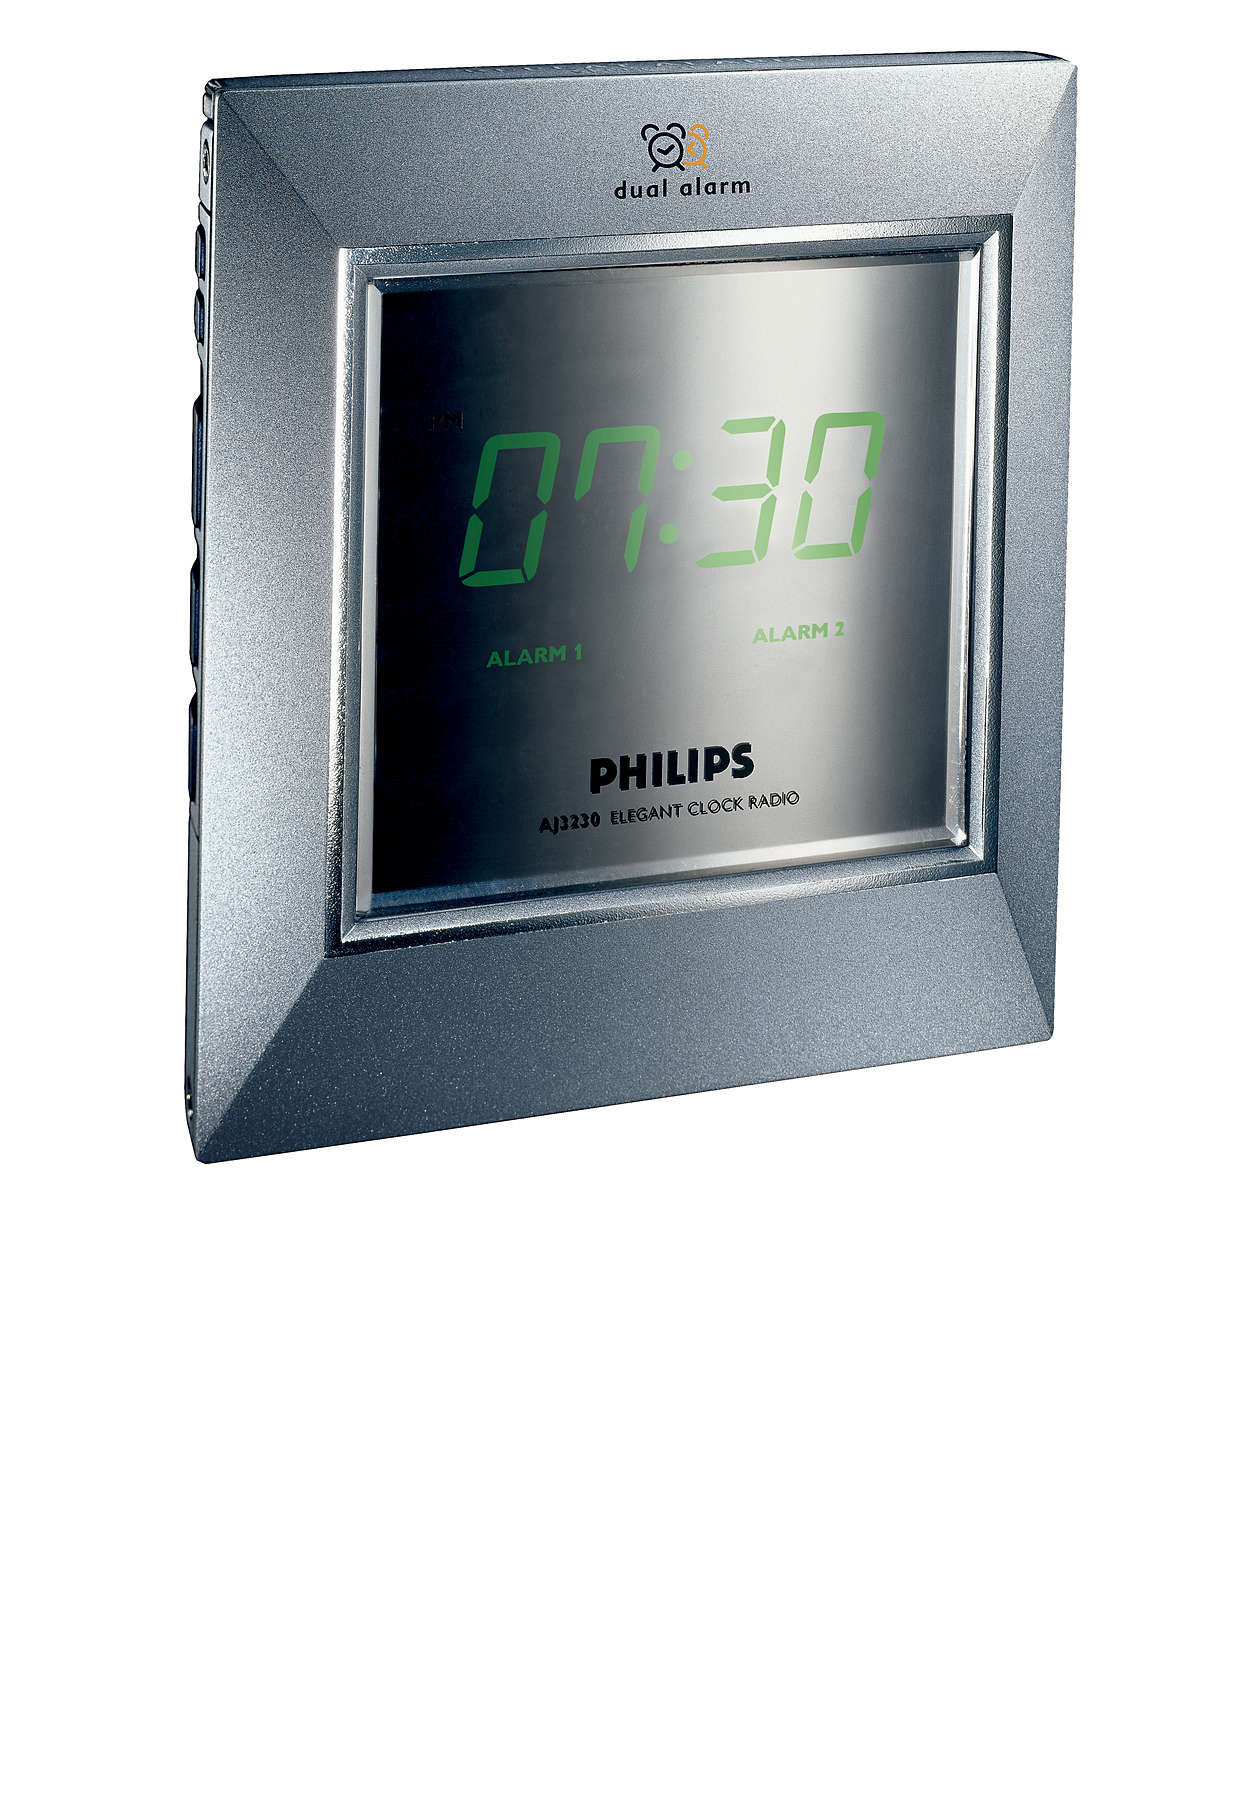 philips aj3231 alarm clock radio instructions